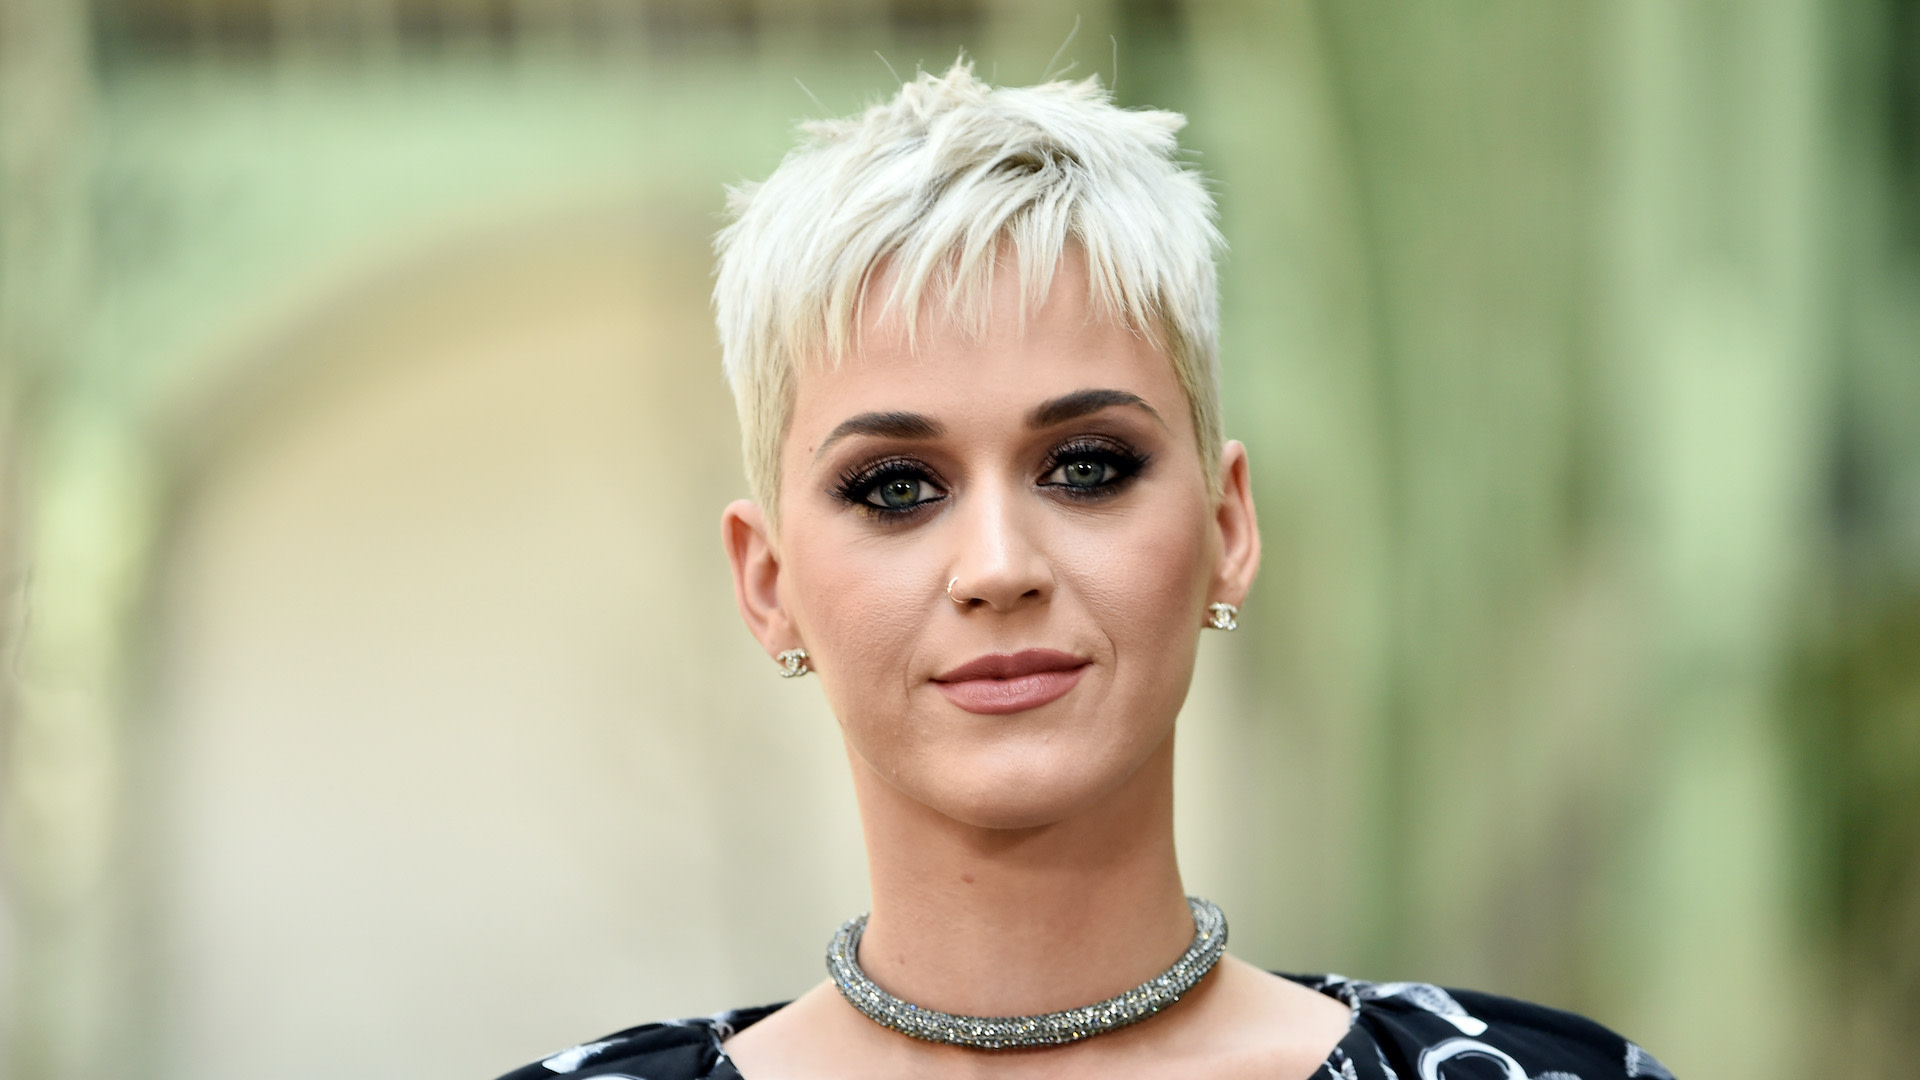 Katy Perry on Her Support of Ellen DeGeneres: 'I'm Not Here to Make Everyone Agree With Me'